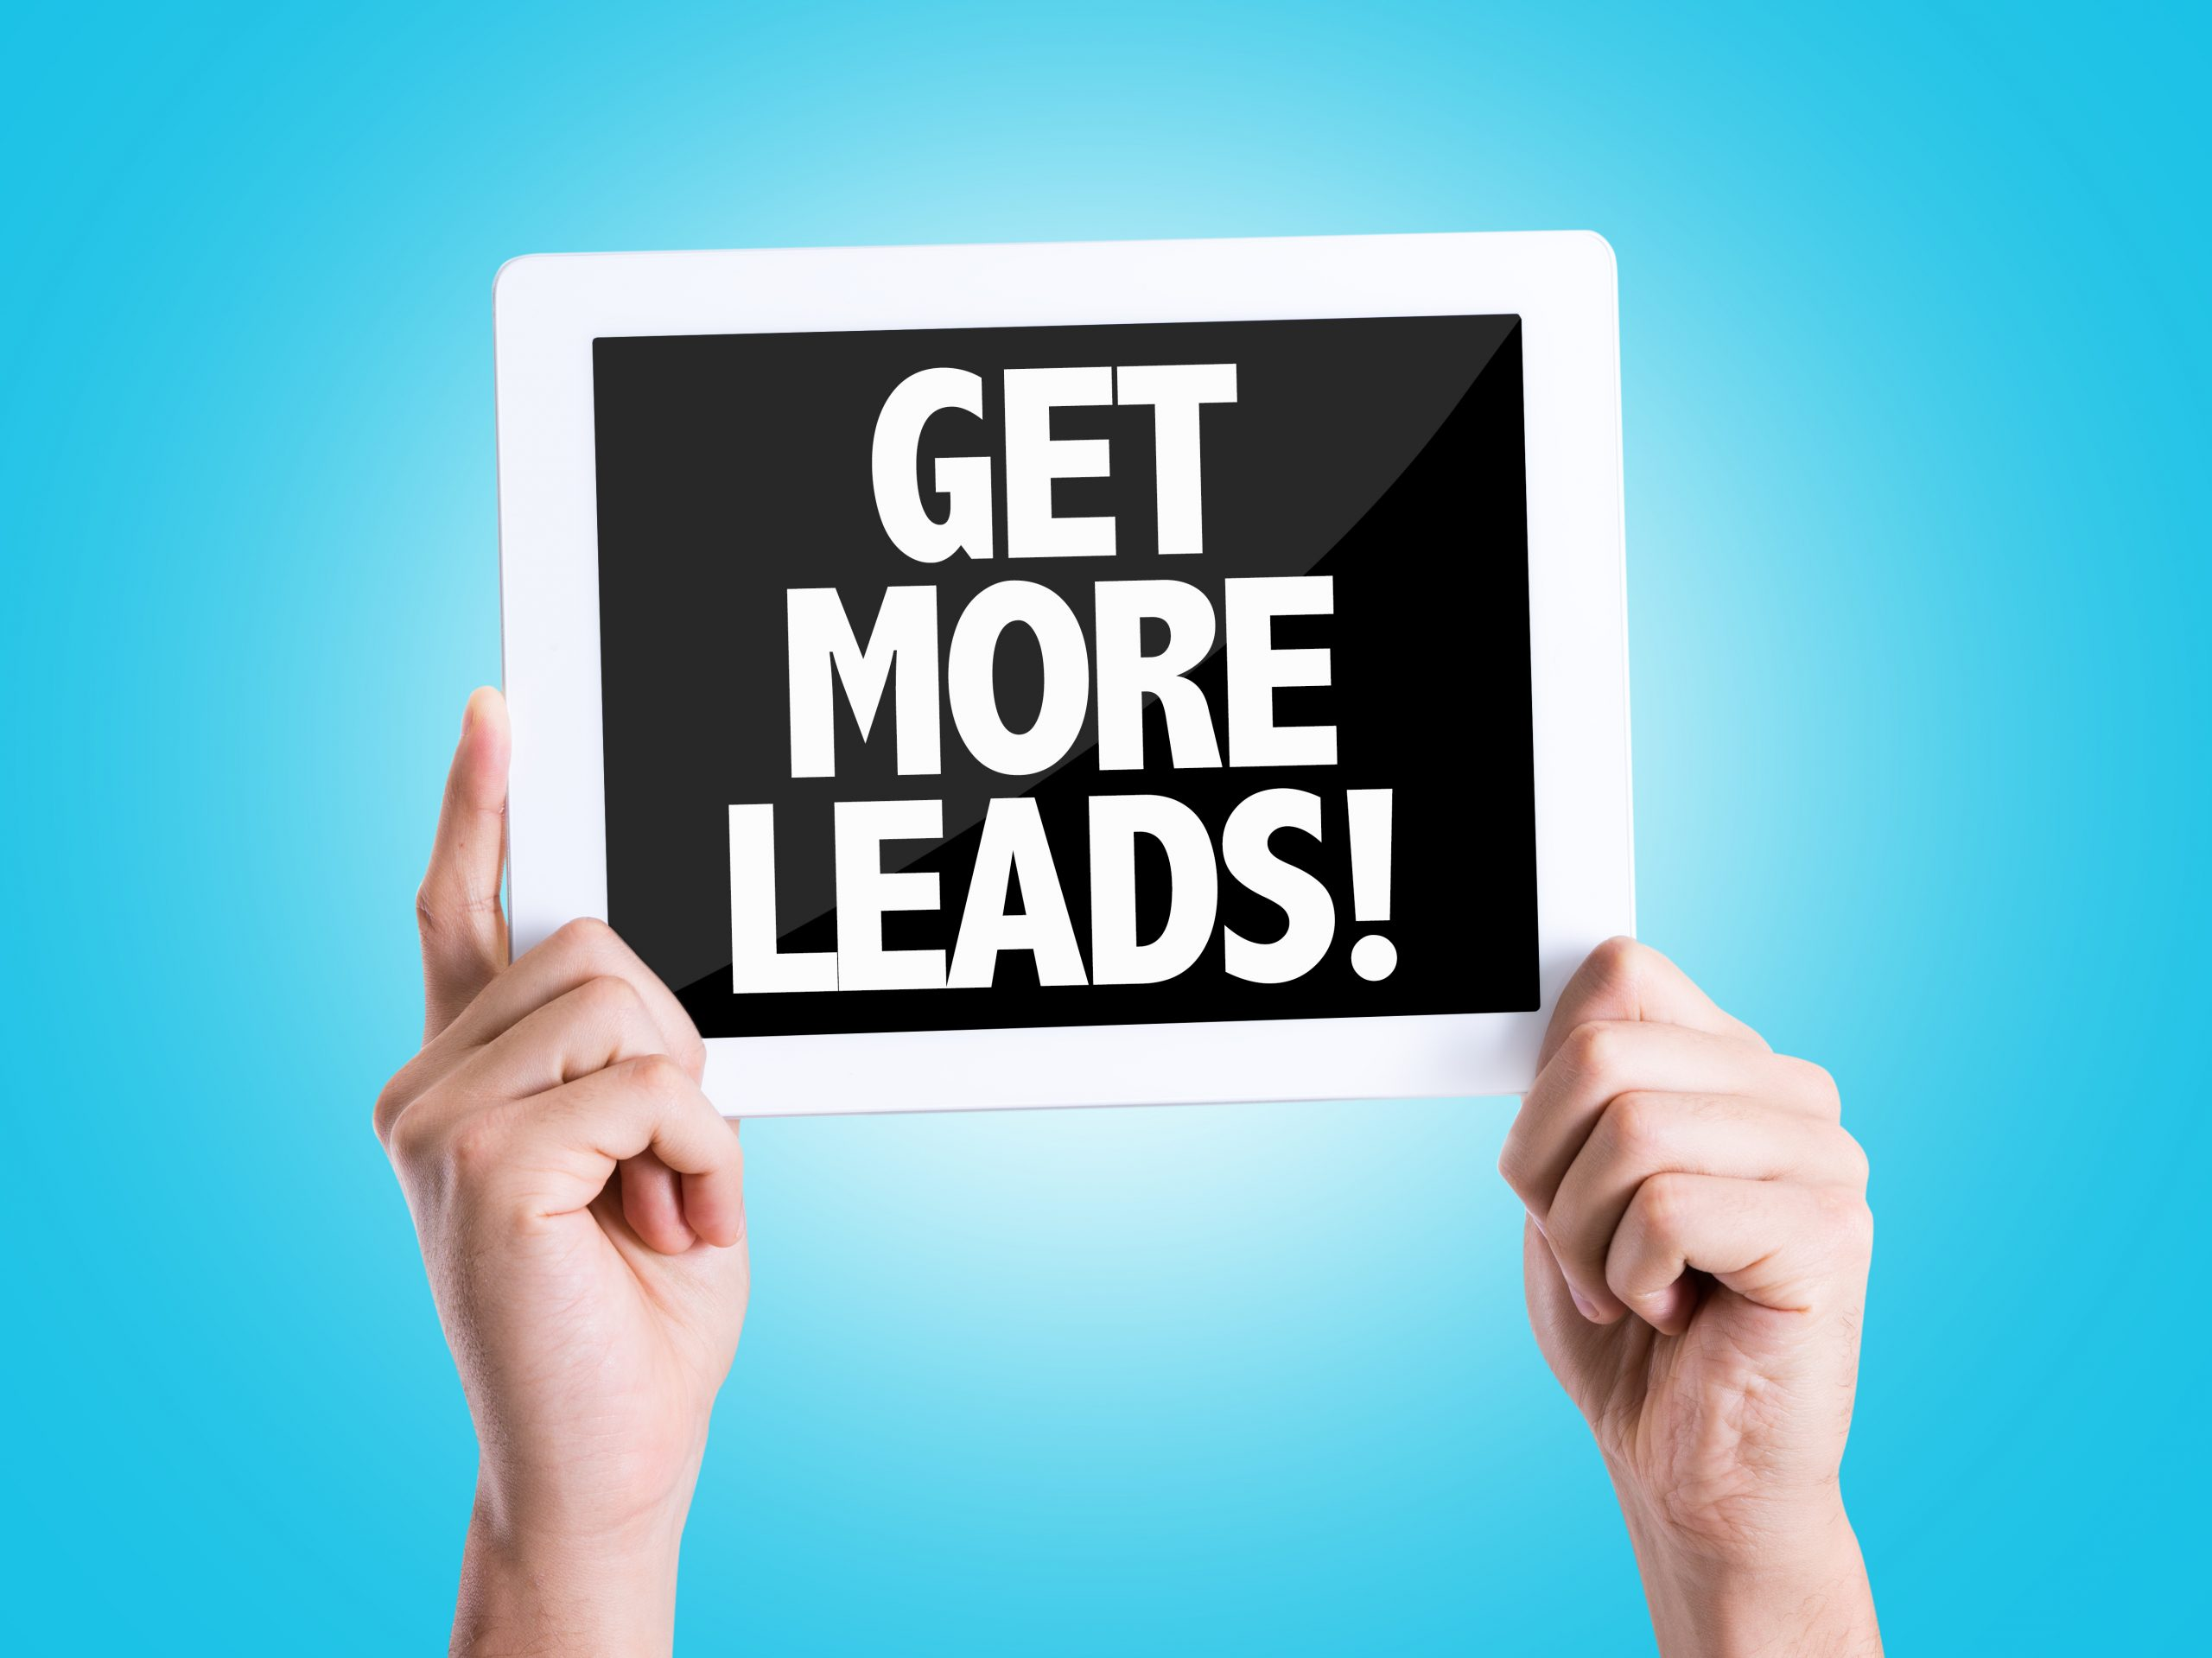 Lead Generation for HVAC companies in 2021